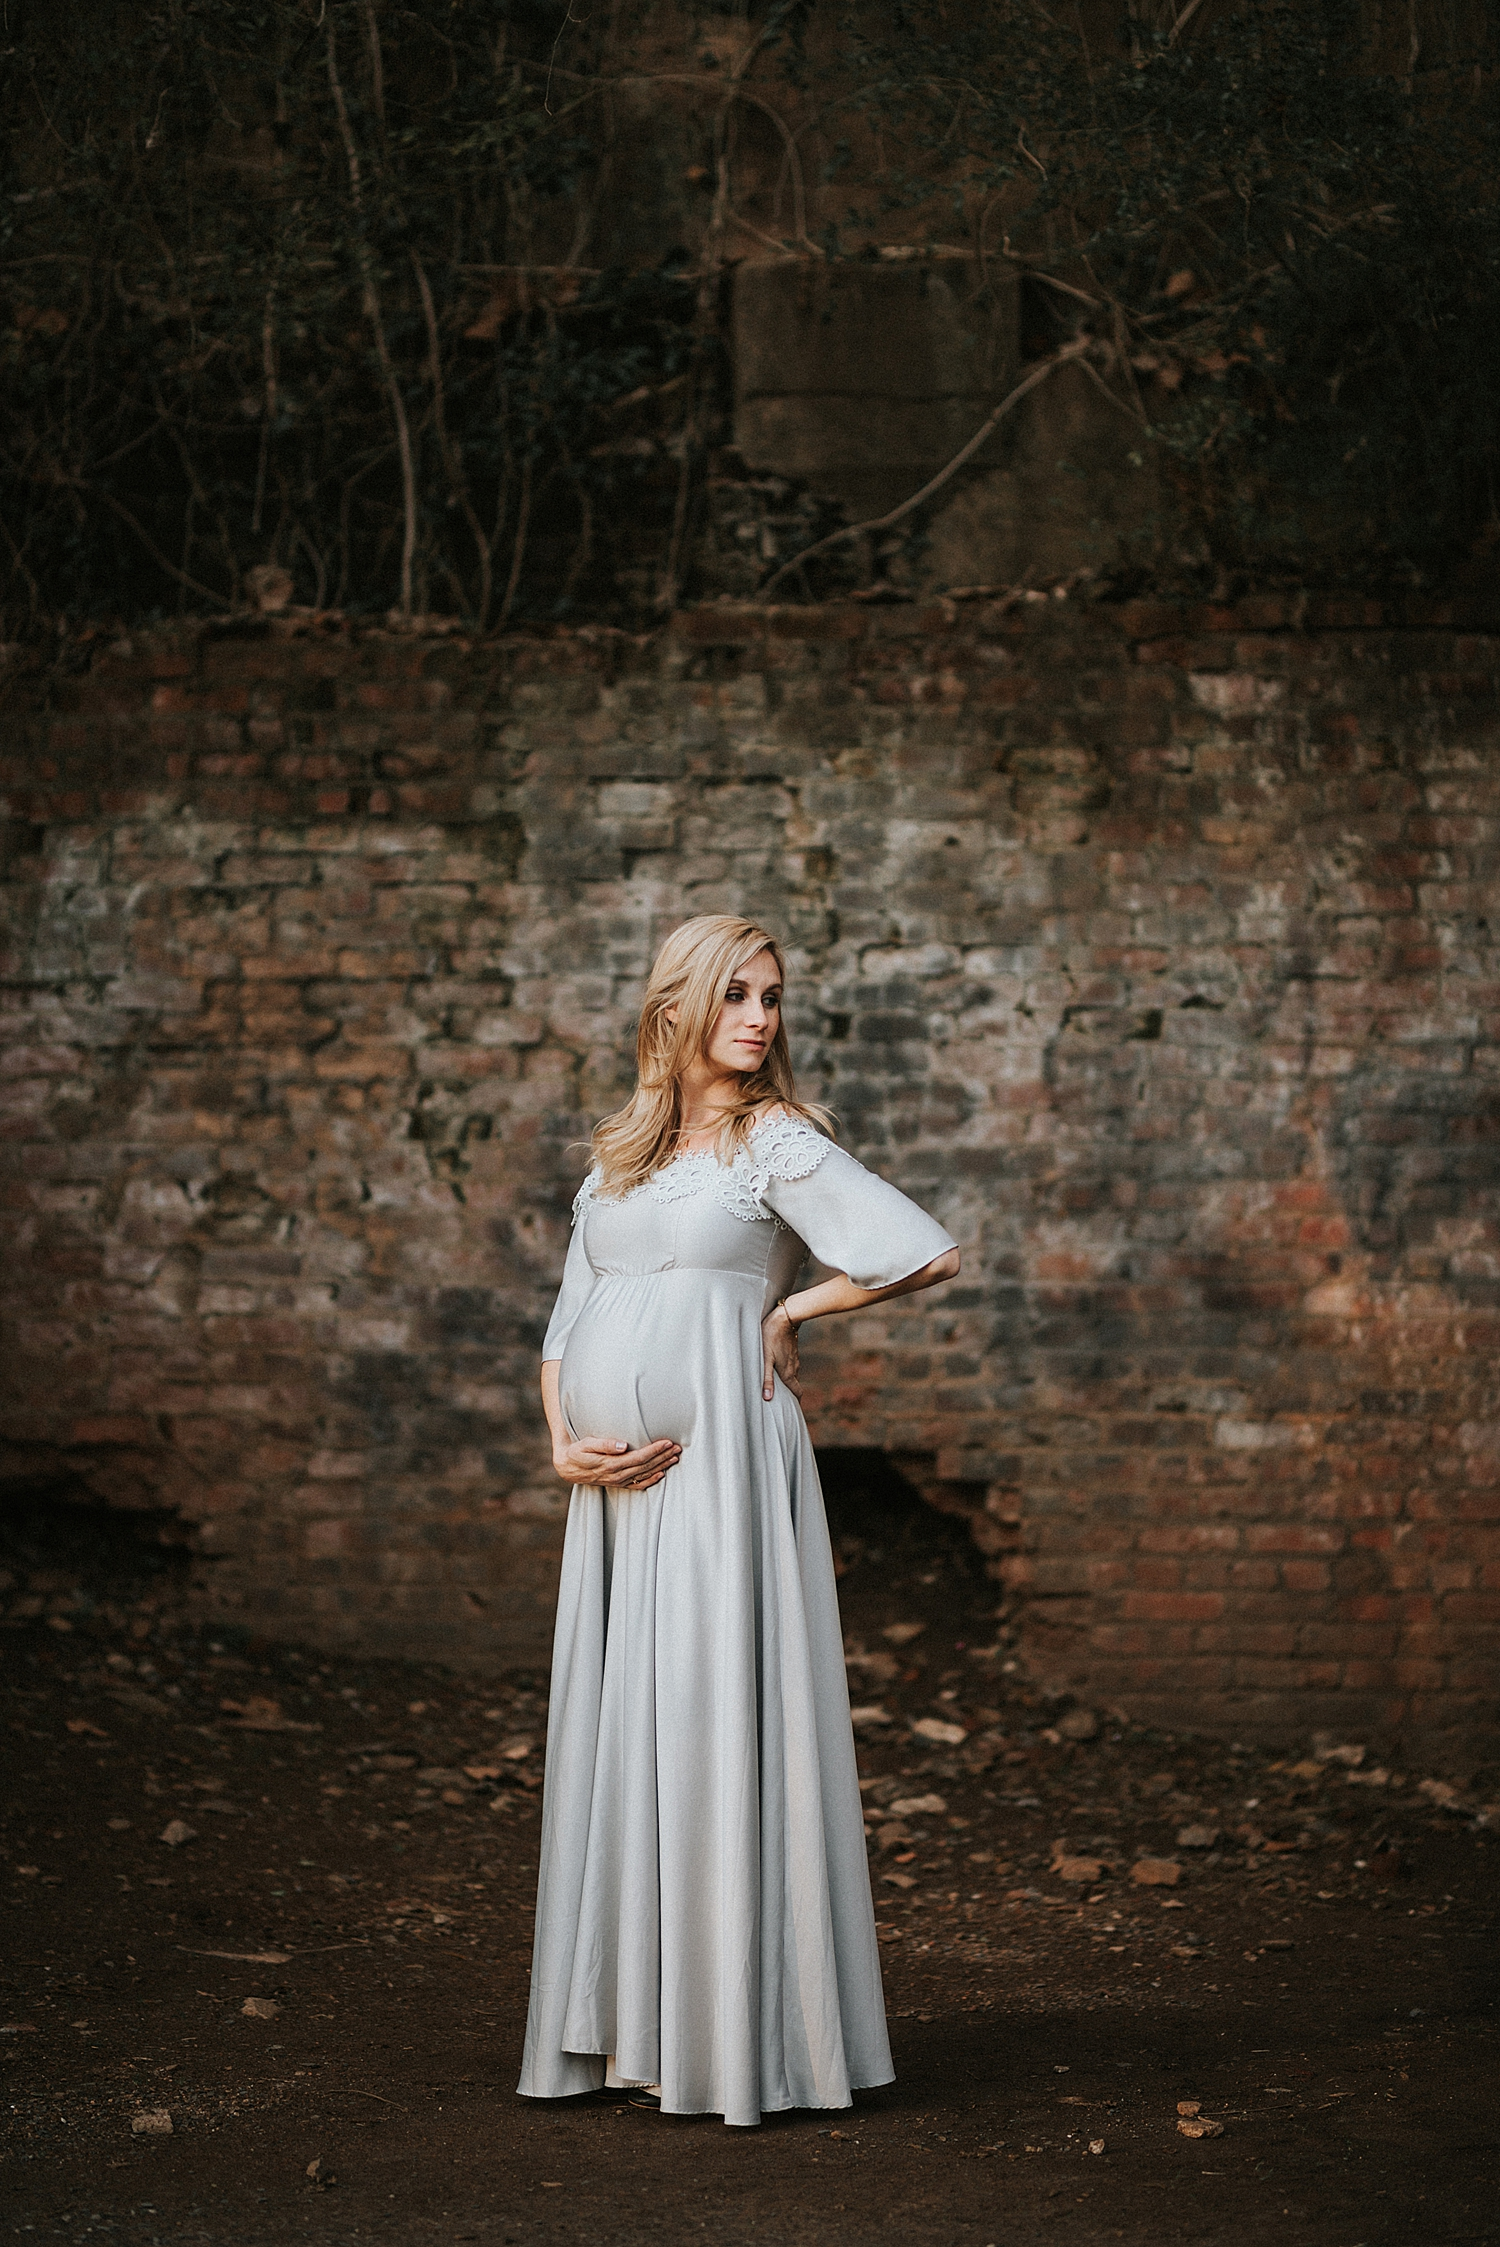 maternity-dress-katyavilchyk-atlanta-maternity-photographer.jpg